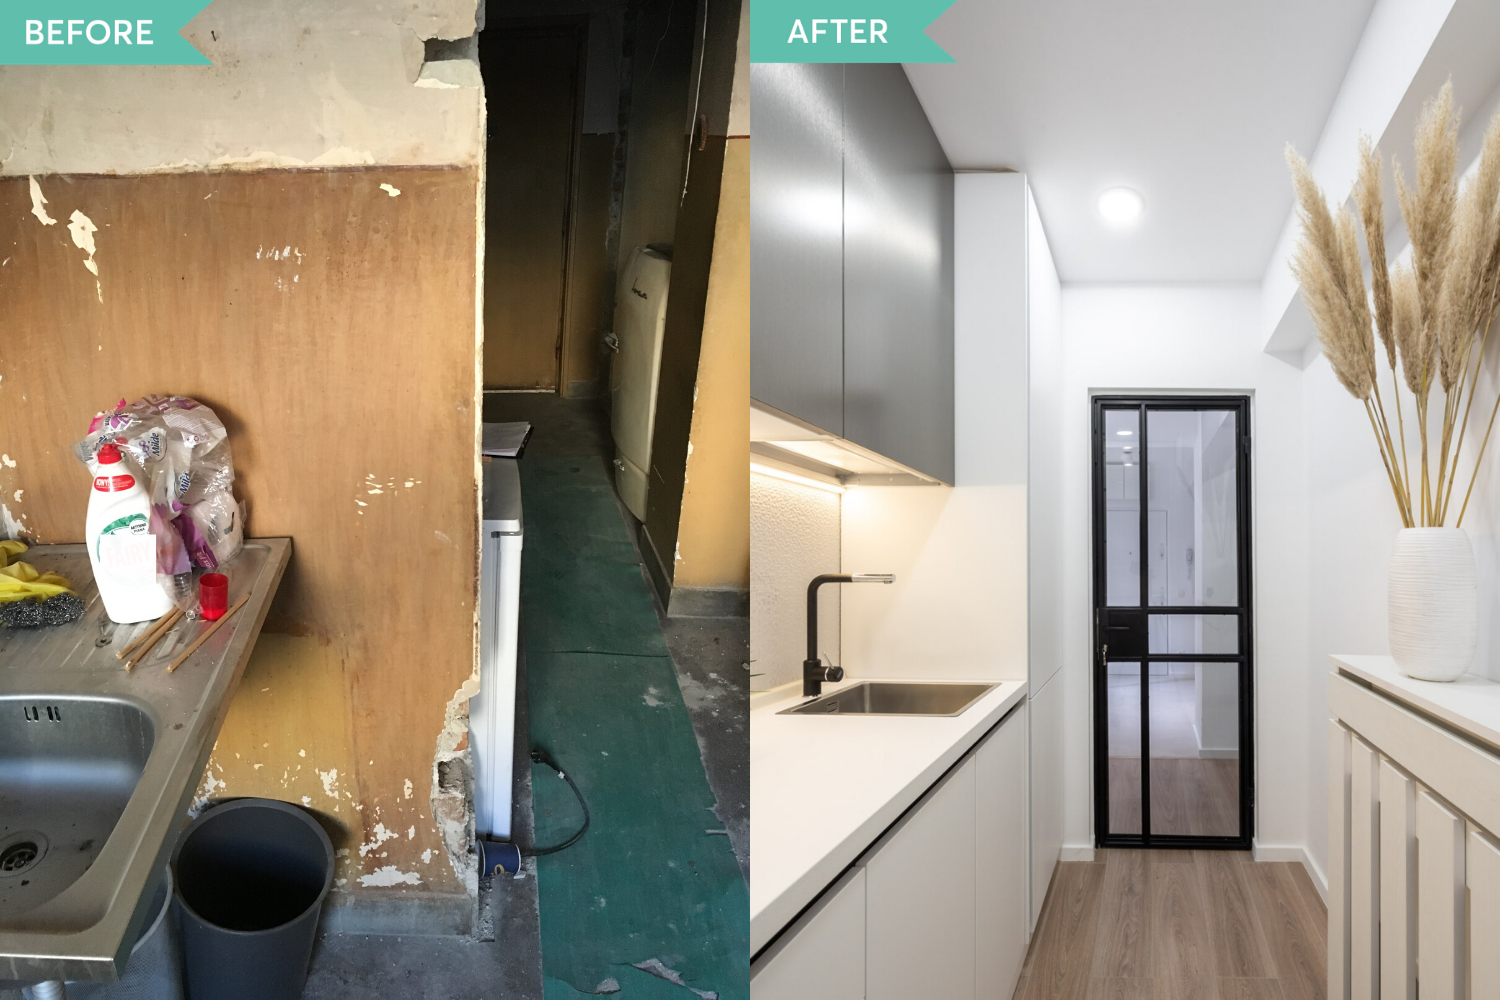 Renovare bucatarie apartament vechi - before and after - arh. Cristiana Zgripcea (1)